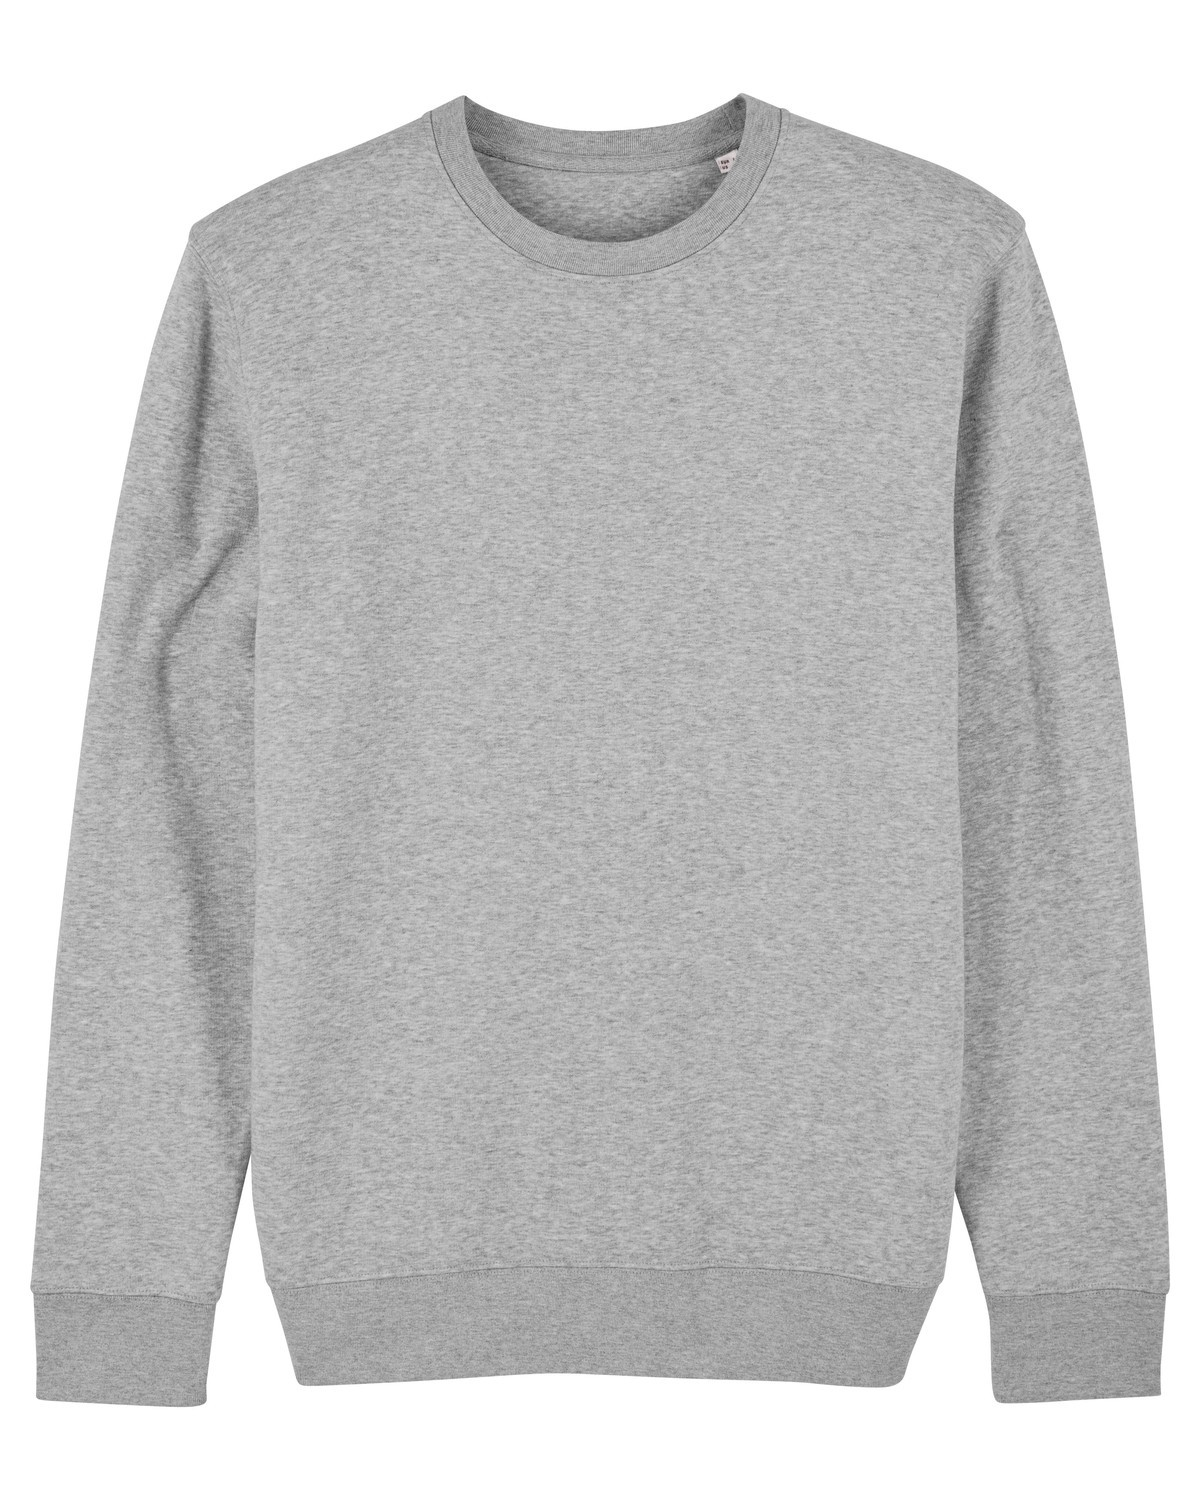 Sweat-shirt col rond iconique unisexe - 81-1038-16